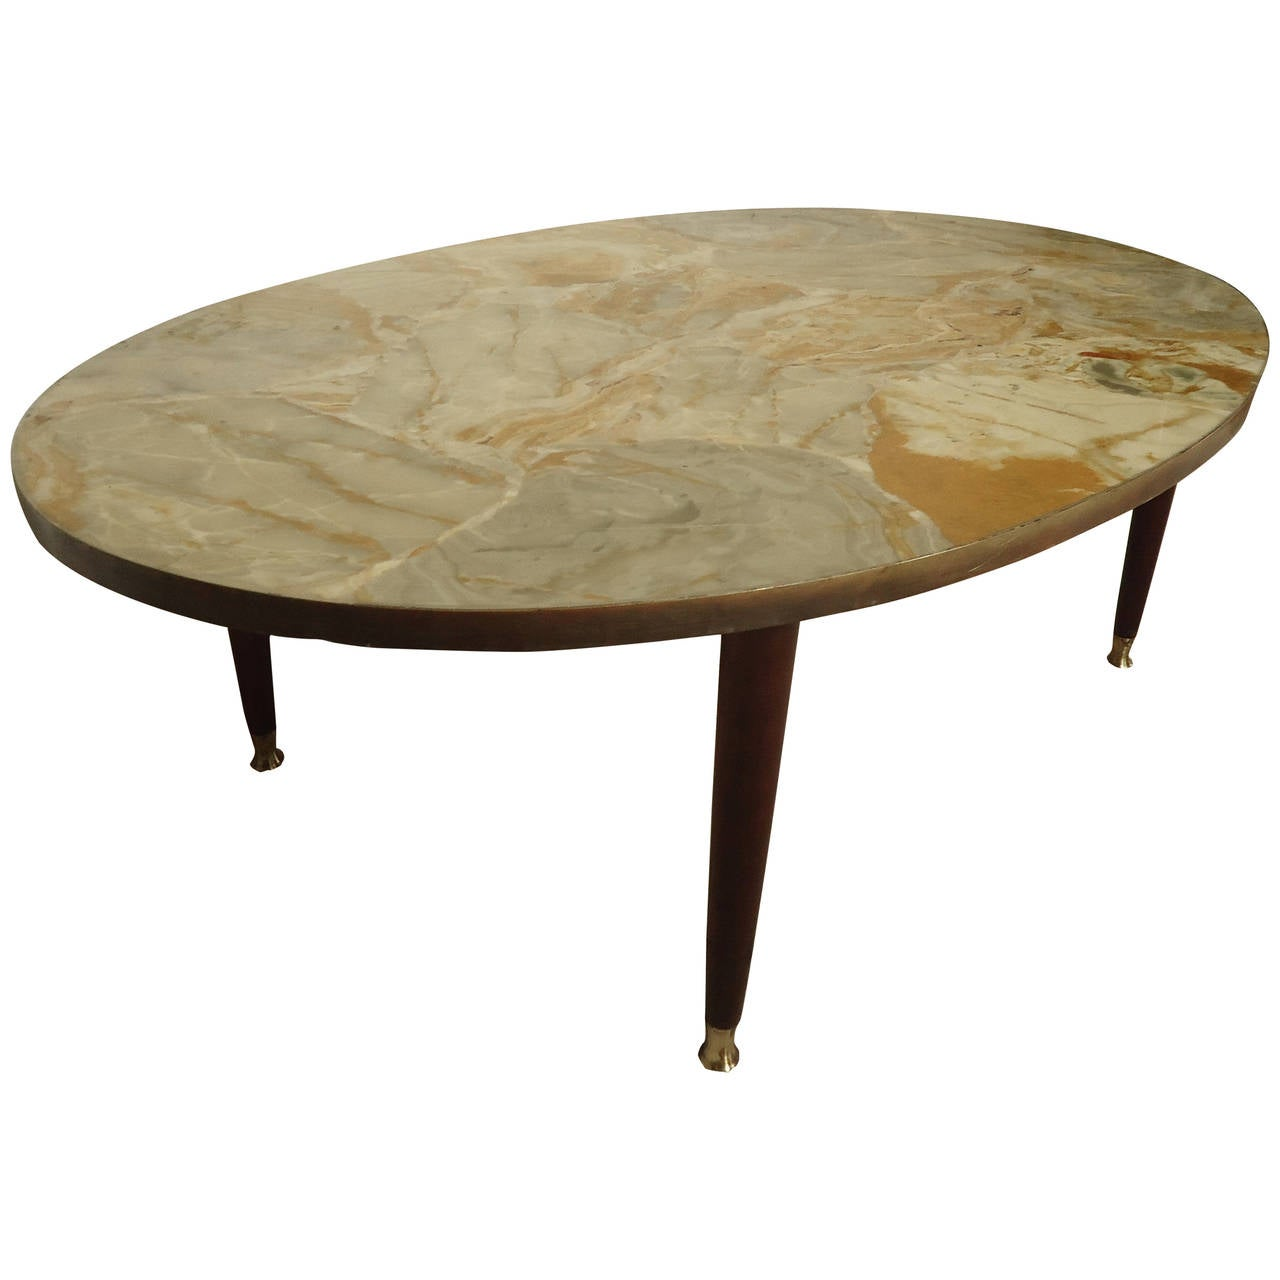 Mid century modern italian marble top coffee table for sale at 1stdibs Coffee tables with marble tops